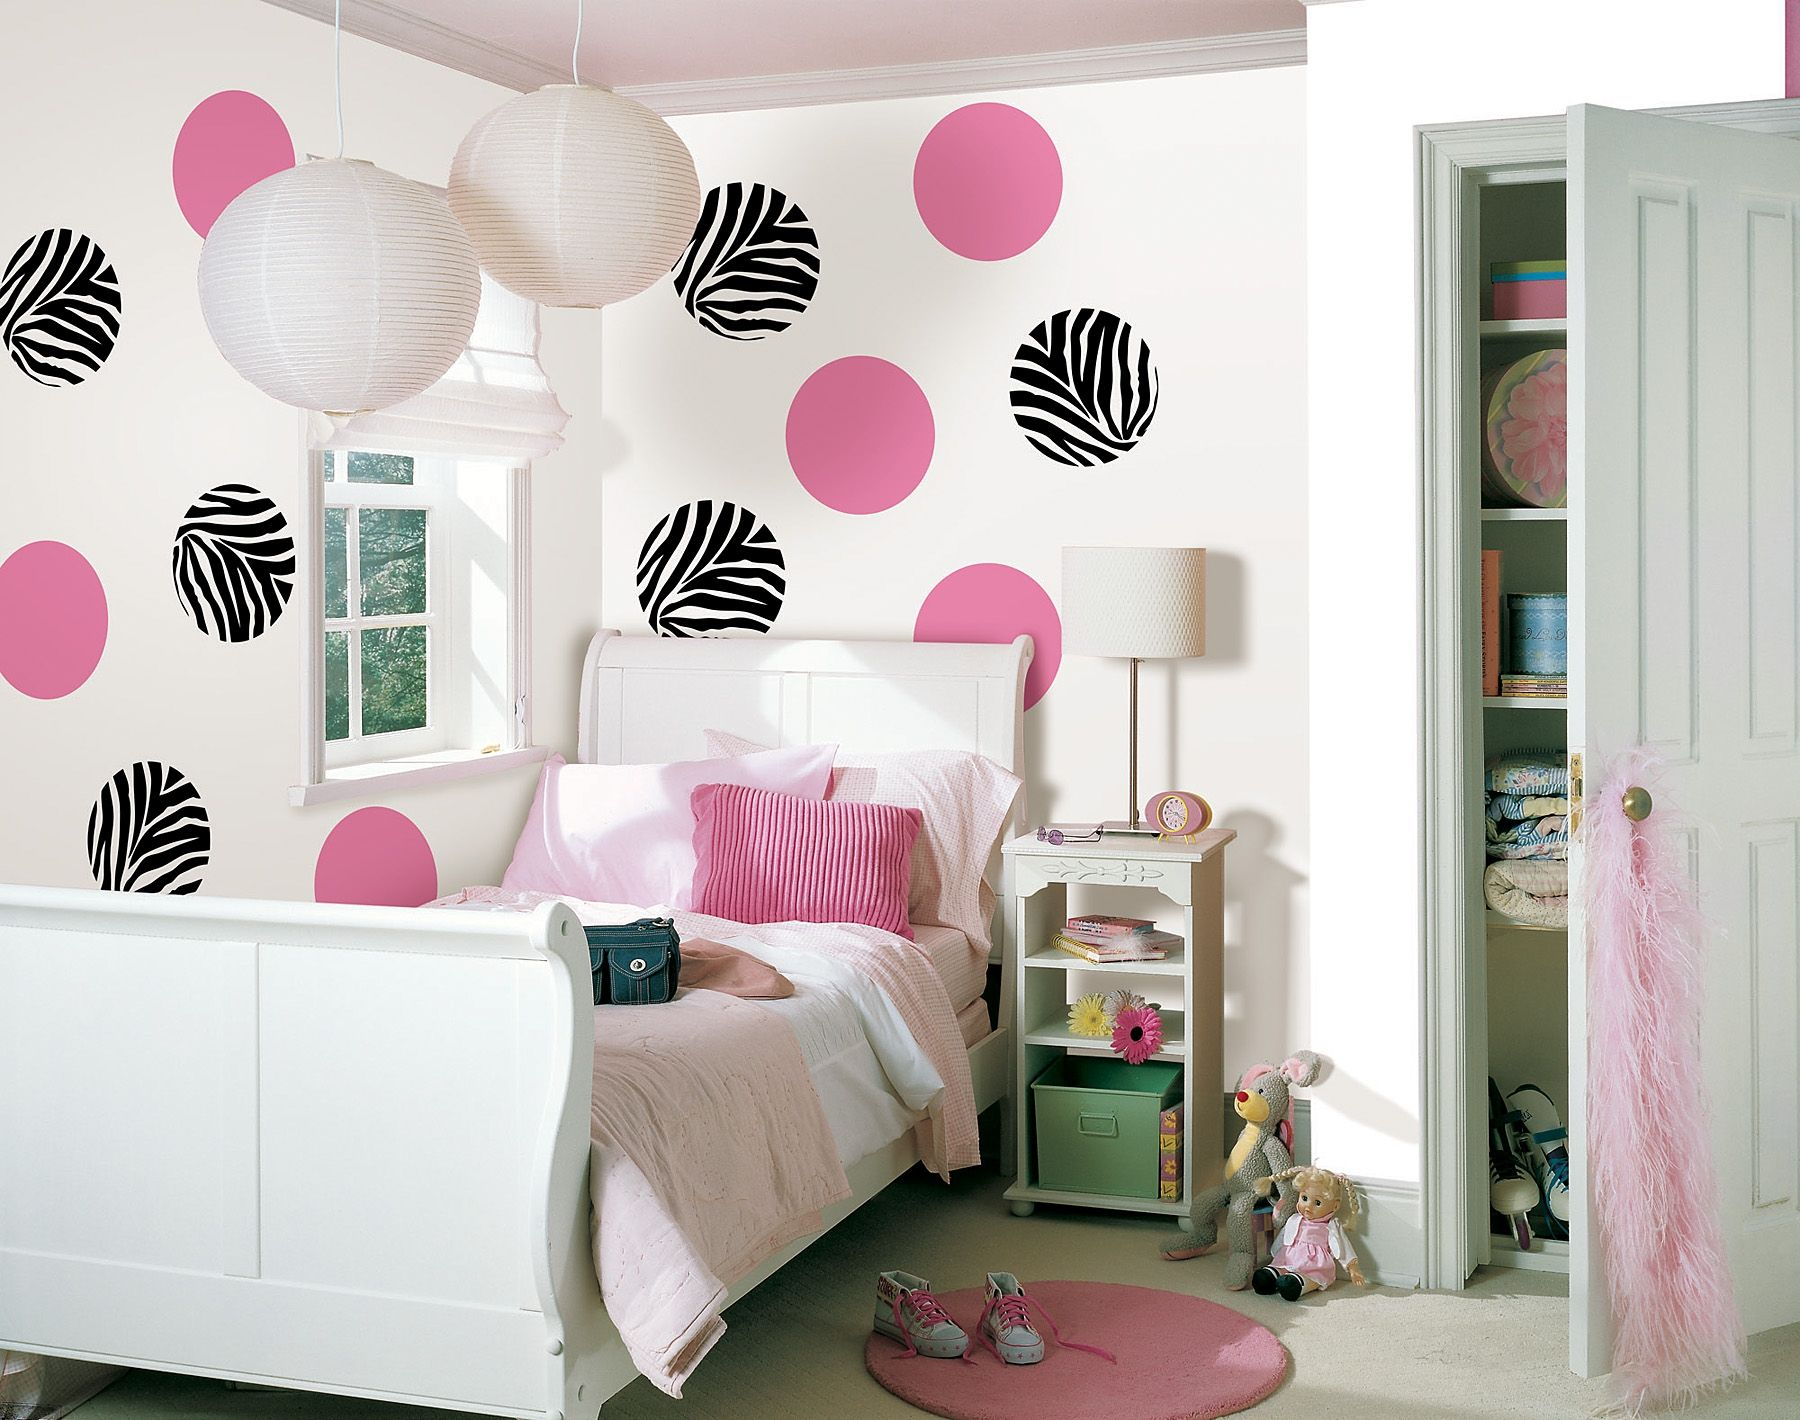 Black and white and pink bedrooms - Diy Bedroom Wall Decor J Aime Mais D Cor Plus Mature Pour Ma Part Teens Room Pink Black White